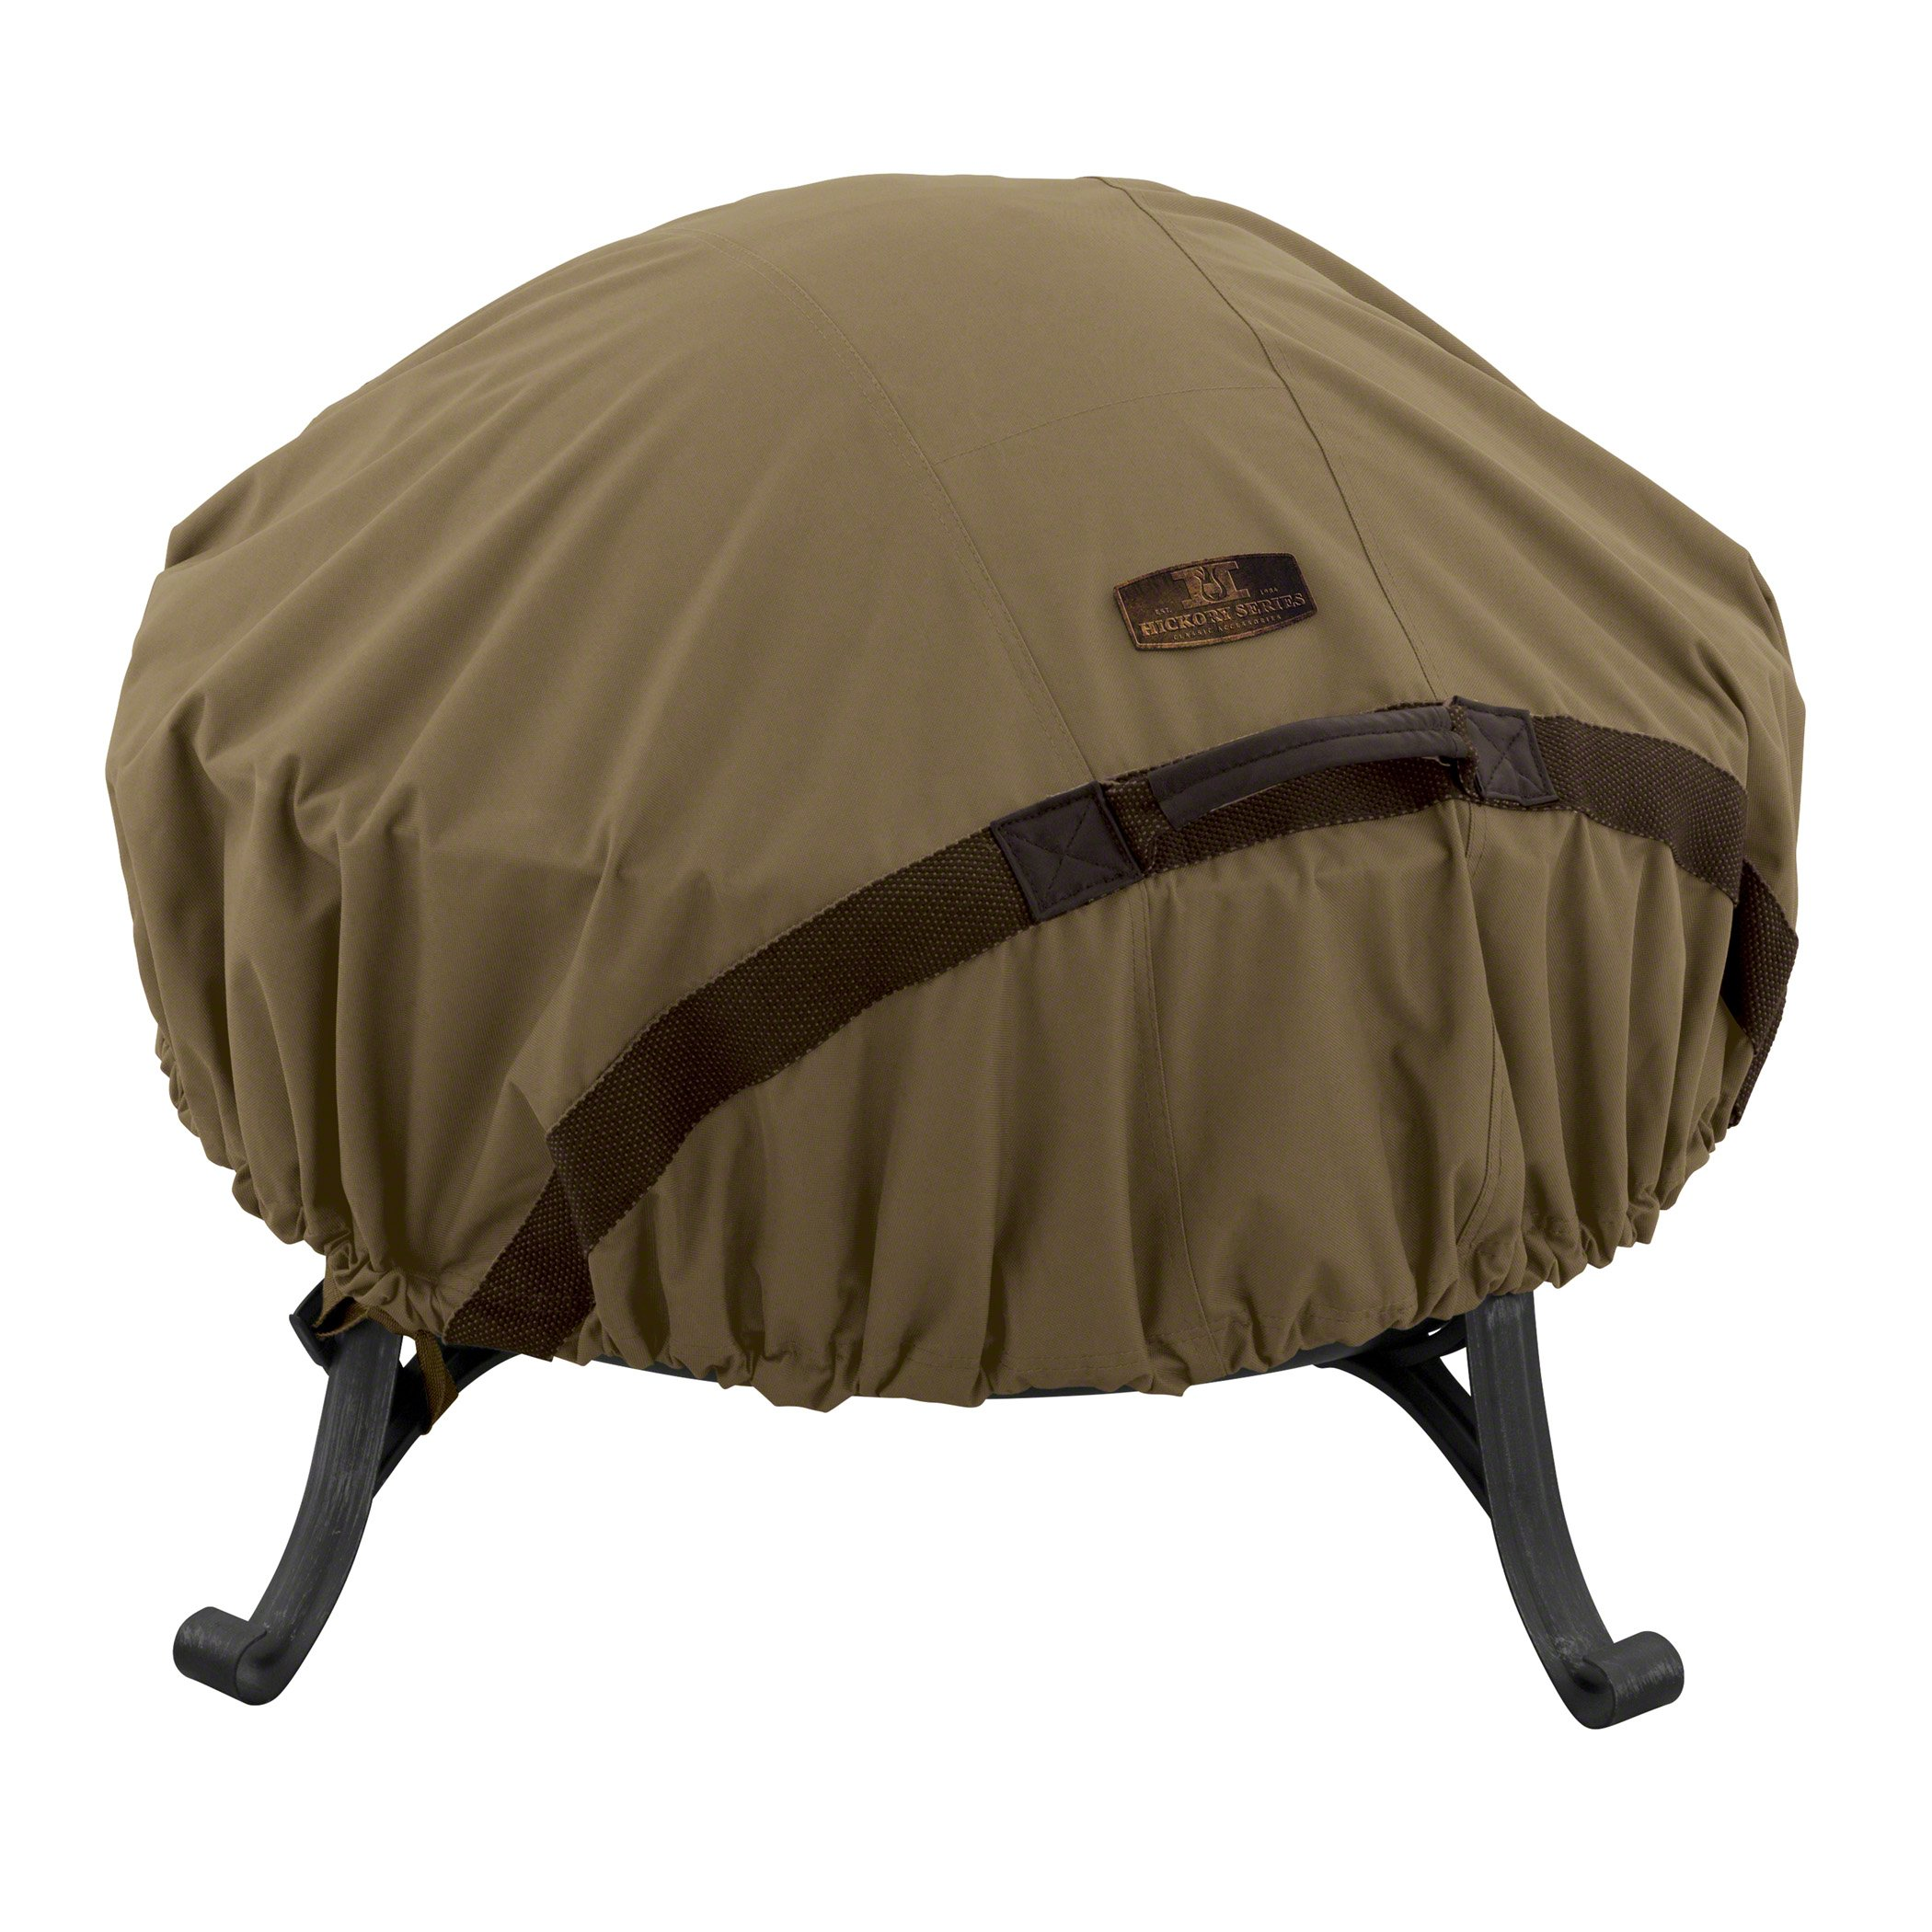 Classic Accessories Hickory Heavy Duty Round Fire Pit Cover - Durable and Water Resistant Patio Cover, Large (55-198-012401-EC)